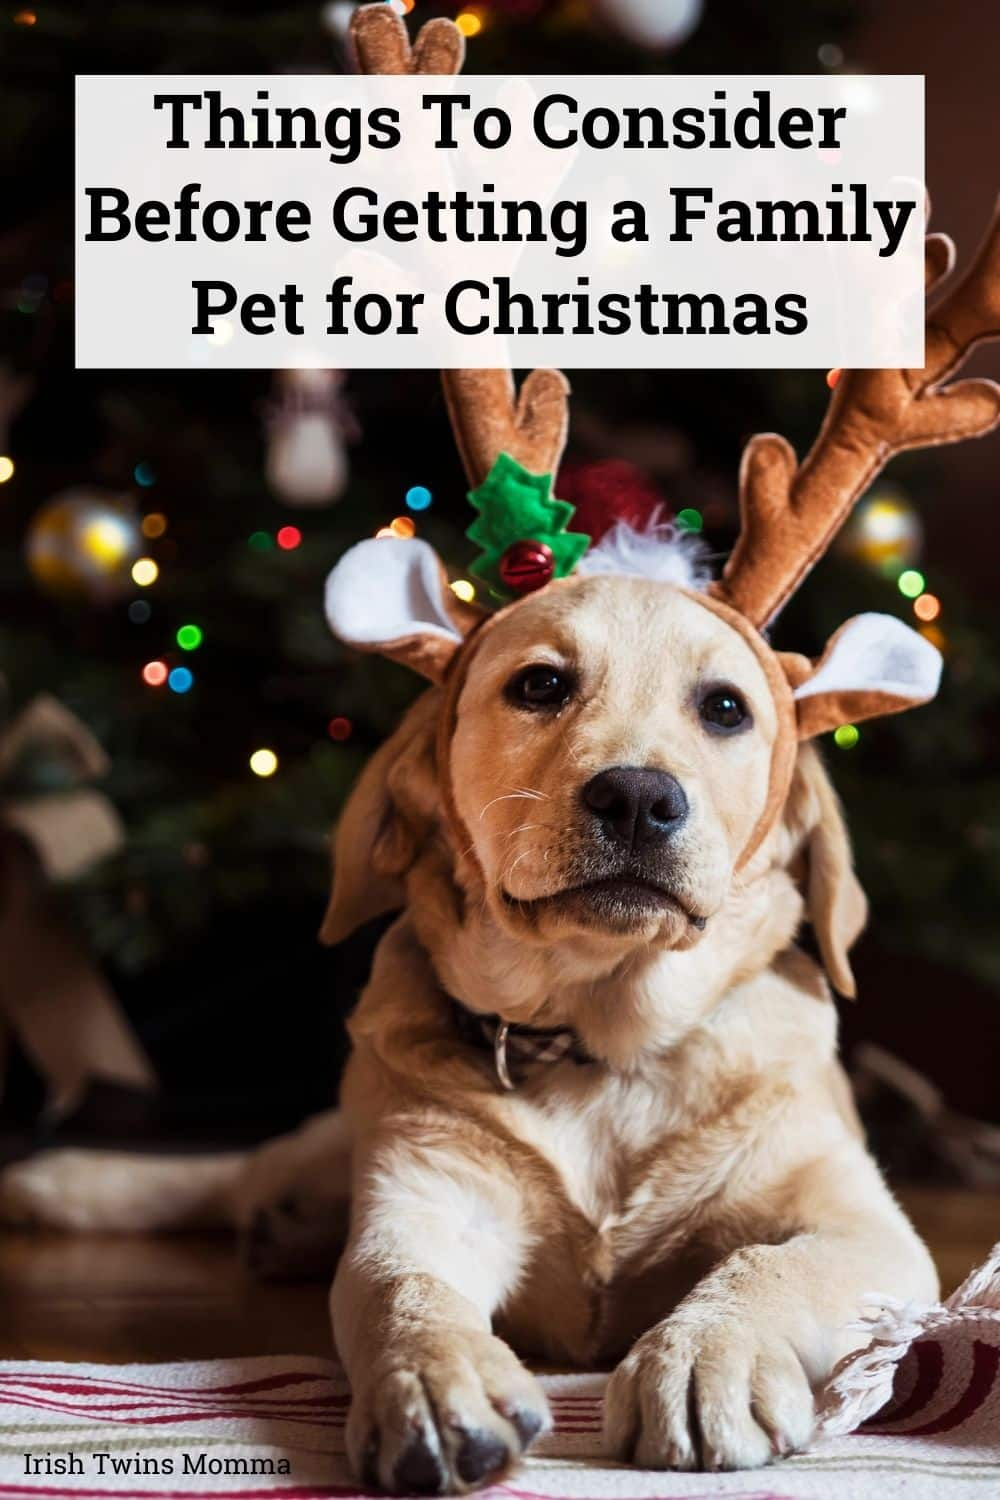 Things To Consider Before Getting a Family Pet for Christmas (1)